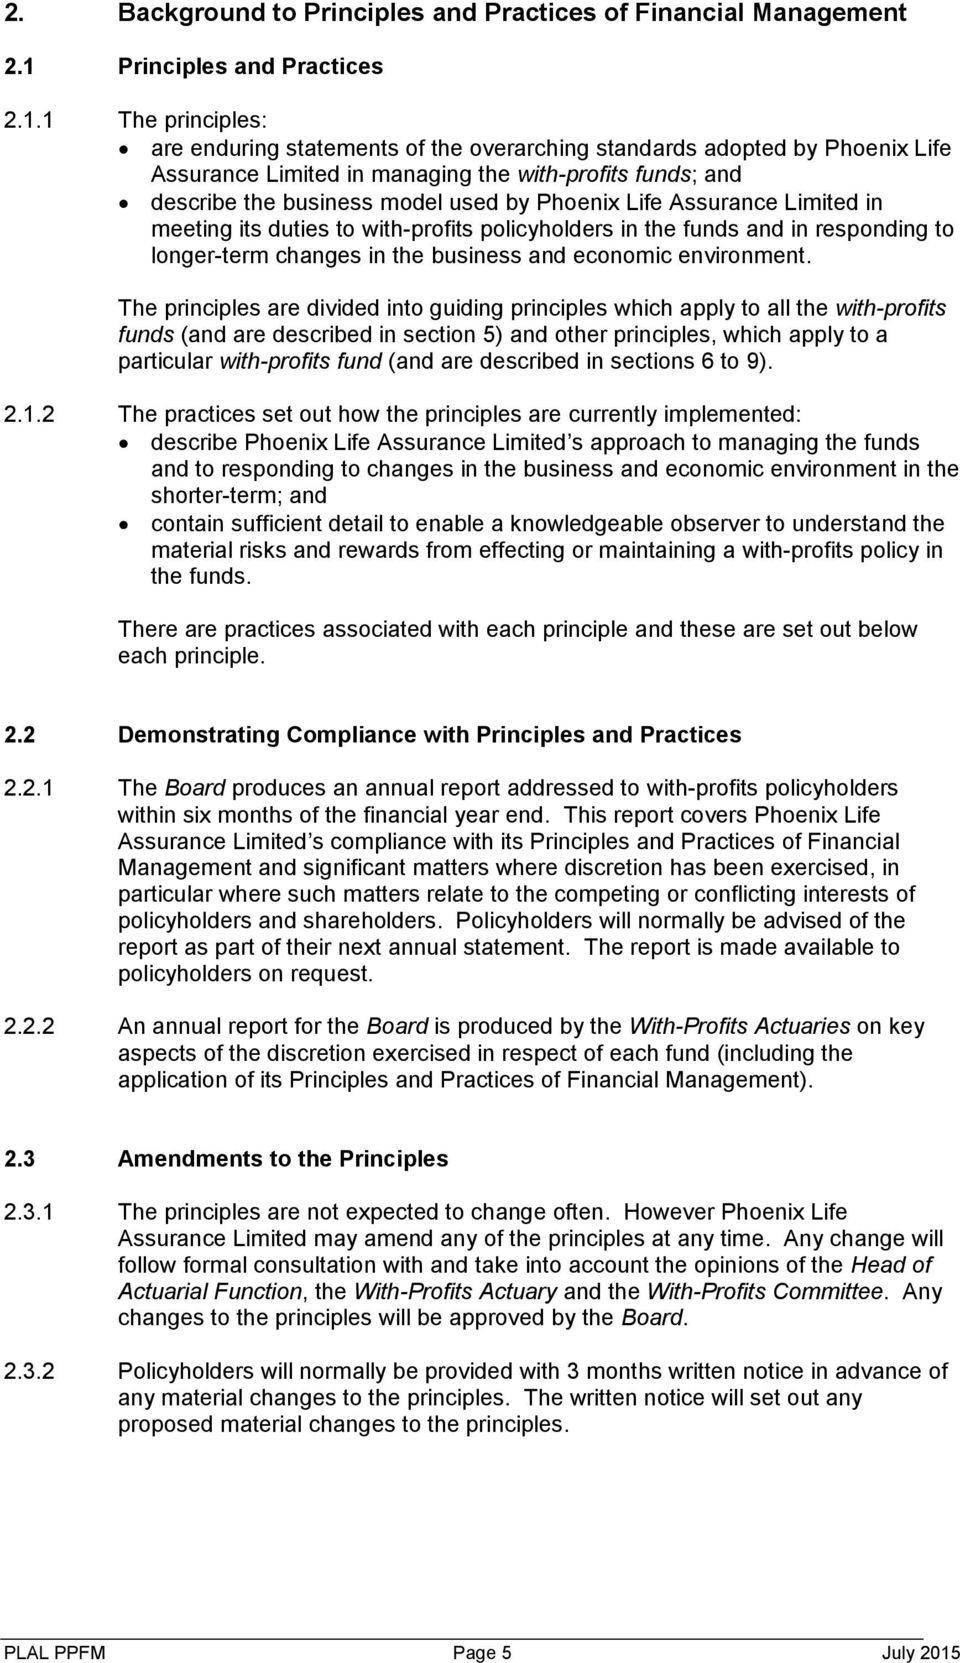 1 The principles: are enduring statements of the overarching standards adopted by Phoenix Life Assurance Limited in managing the with-profits funds; and describe the business model used by Phoenix